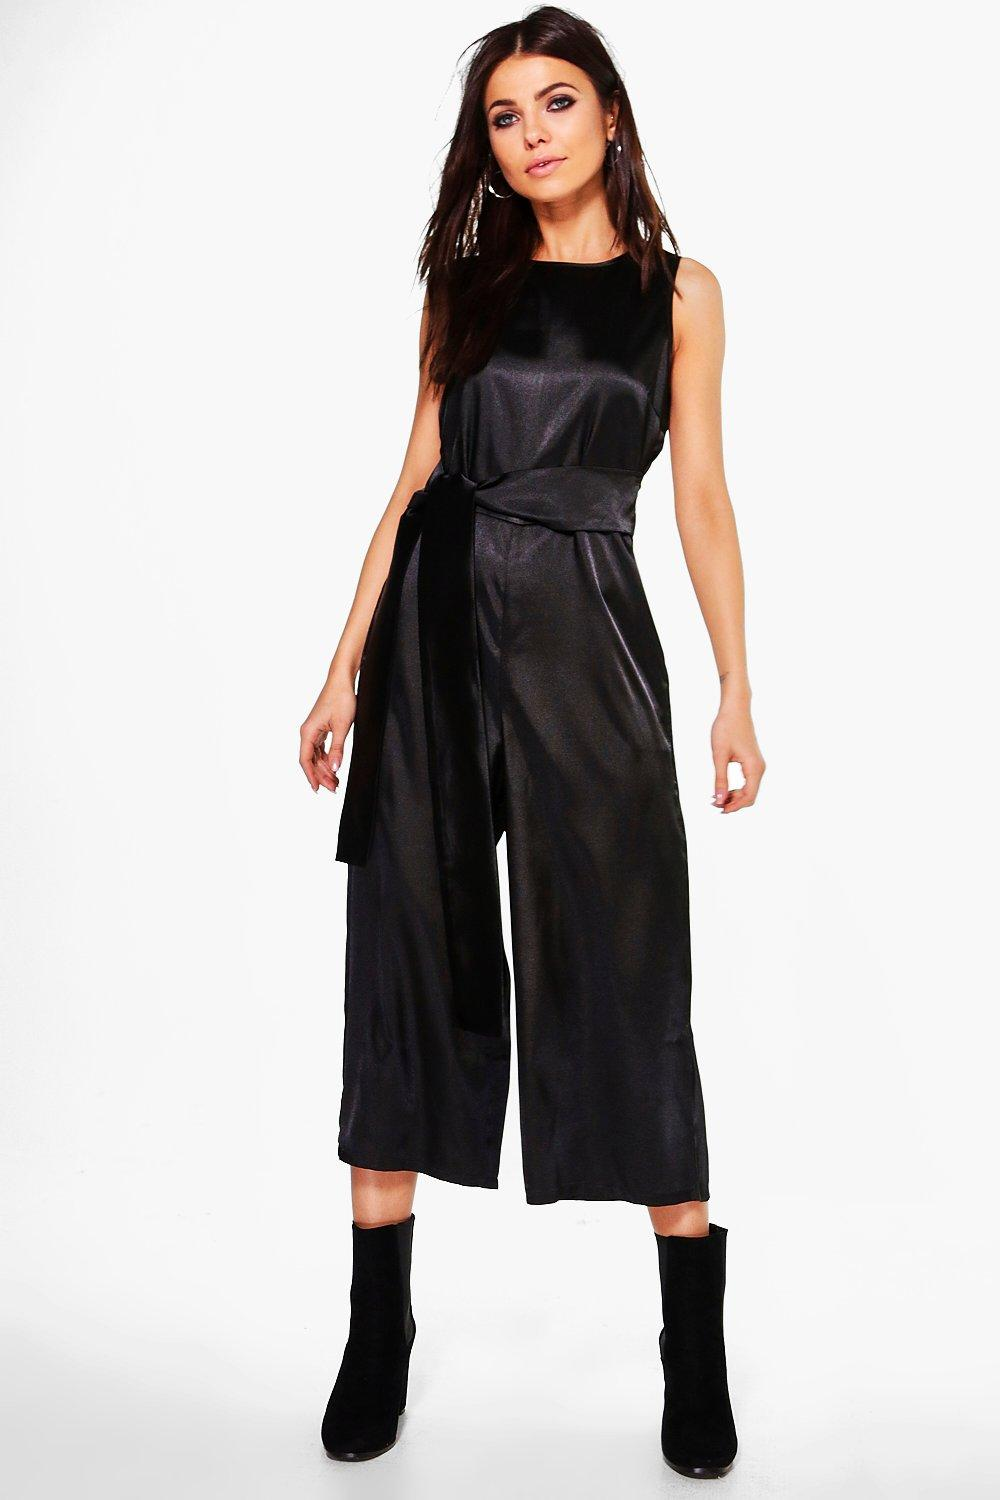 Satin jumpsuit | Shop for cheap Women's Outerwear and Save online